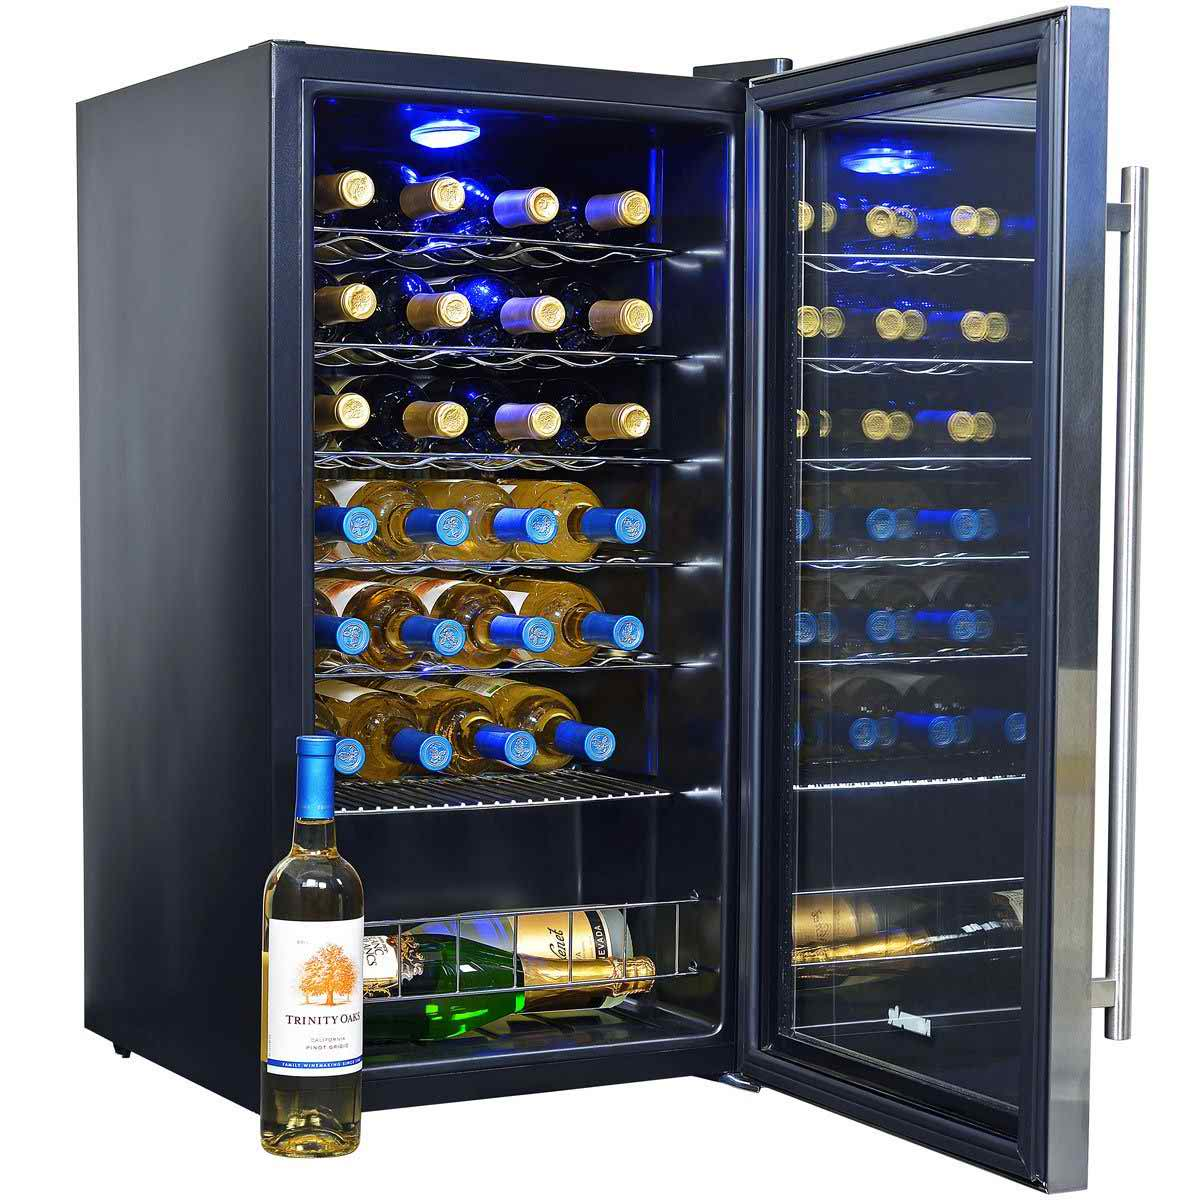 NewAir AWC-270E Compressor Wine Cooler 27-Bottle